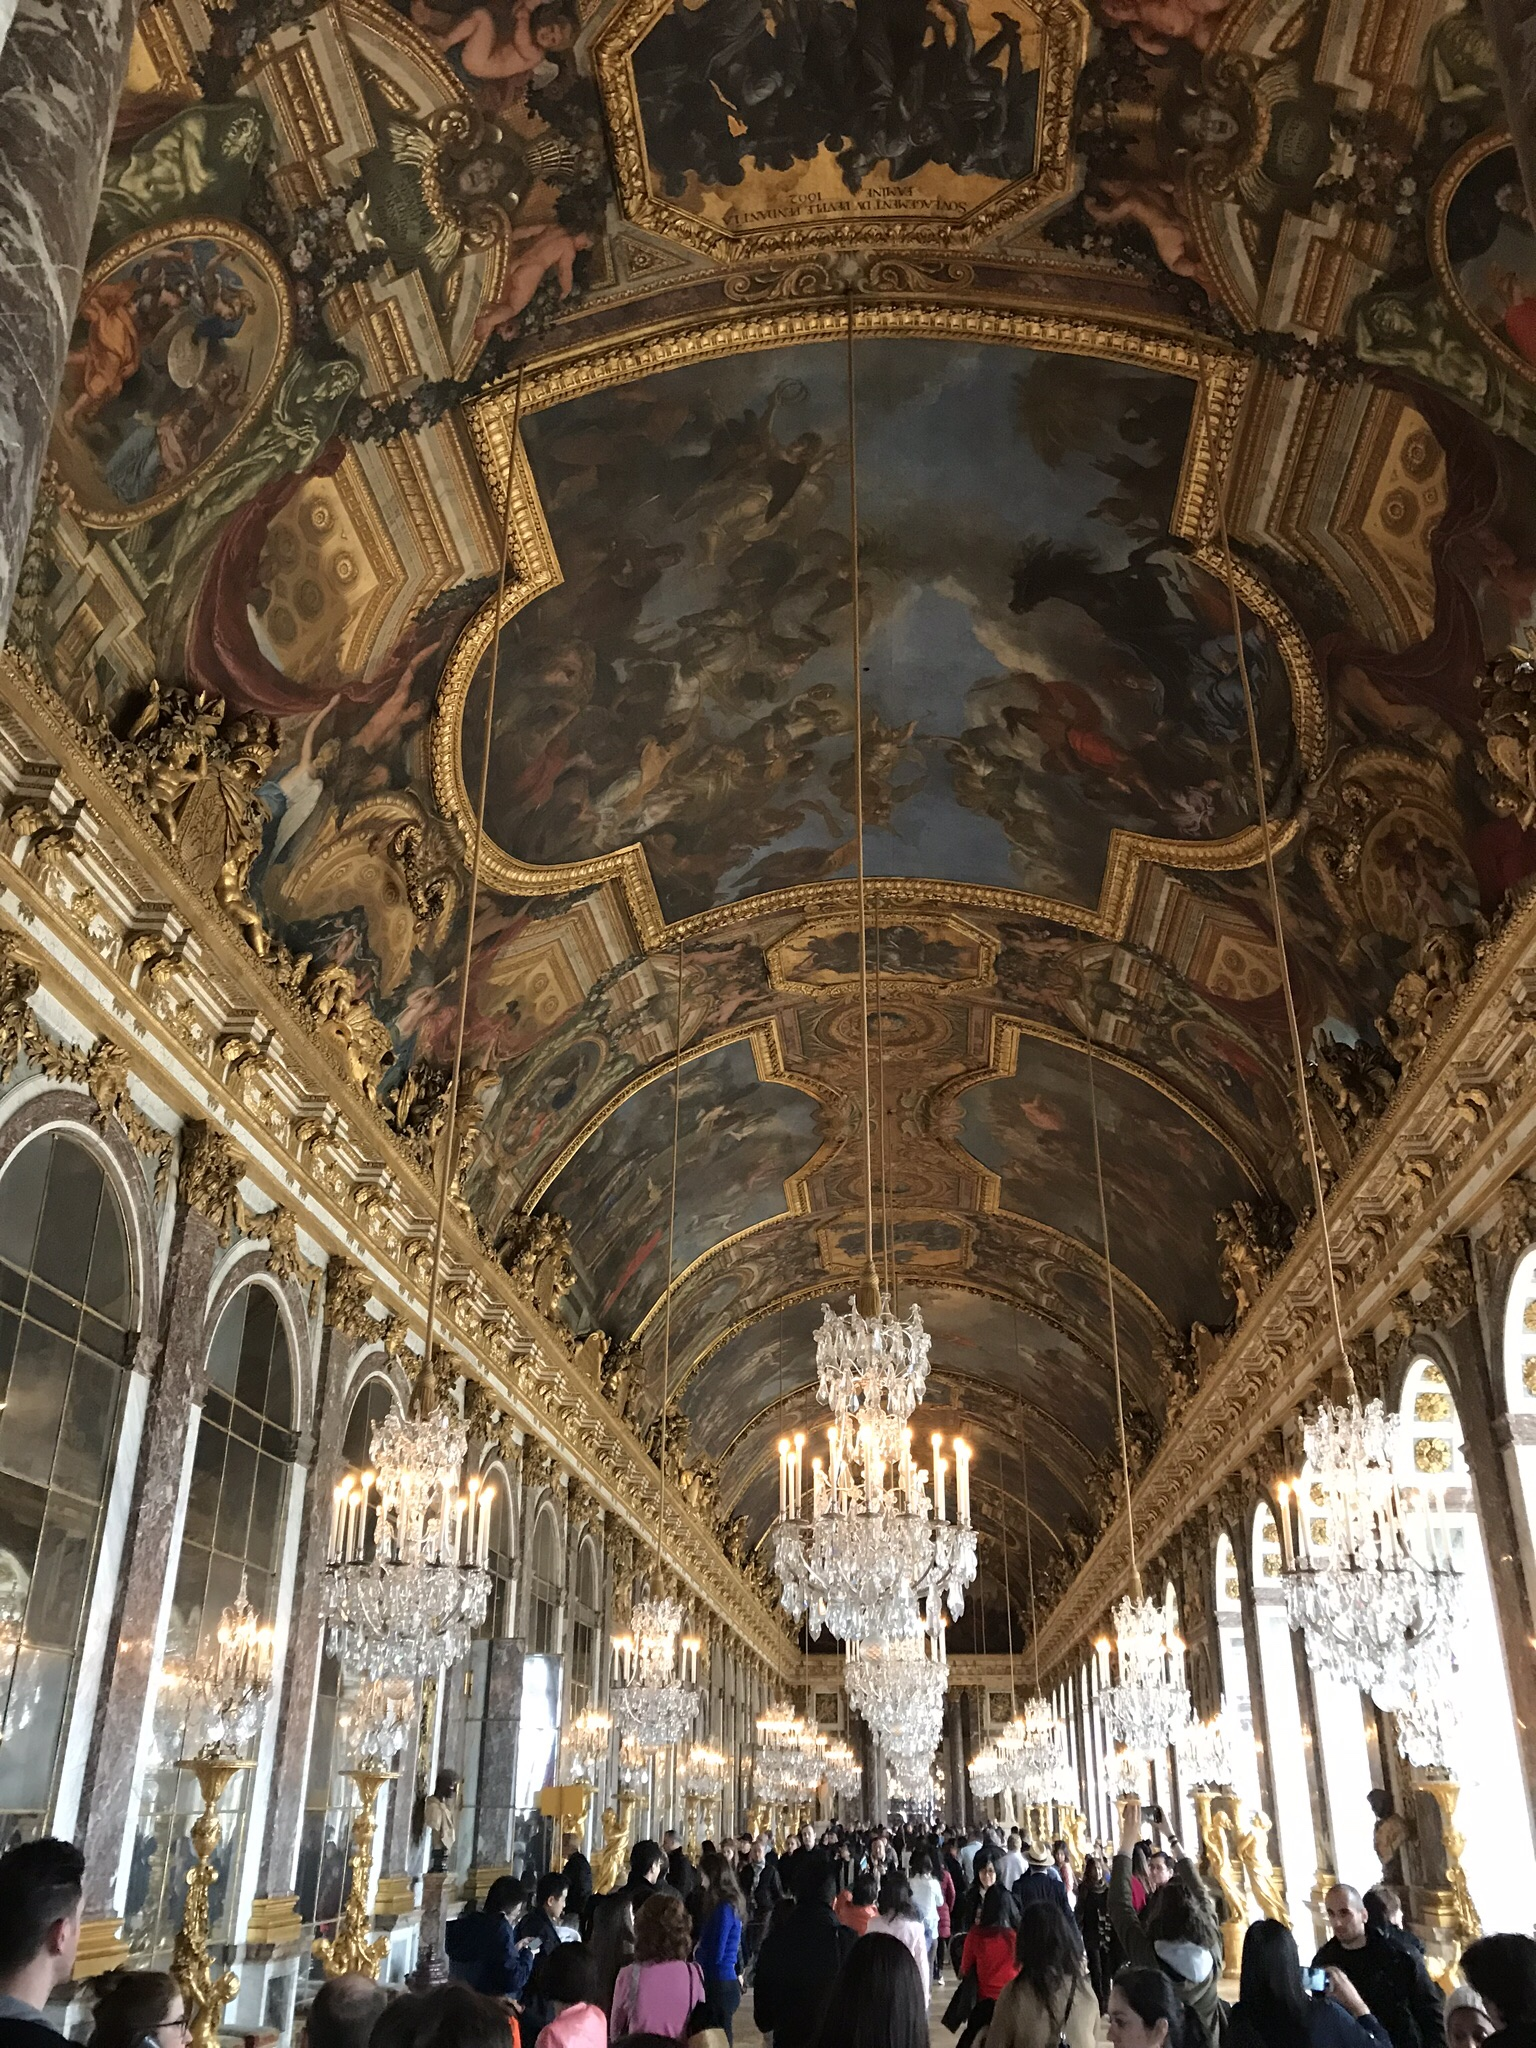 Versailles's gorgeous Hall of Mirrors is out of this world gorgeous and cozy warm in Paris's winter weather.